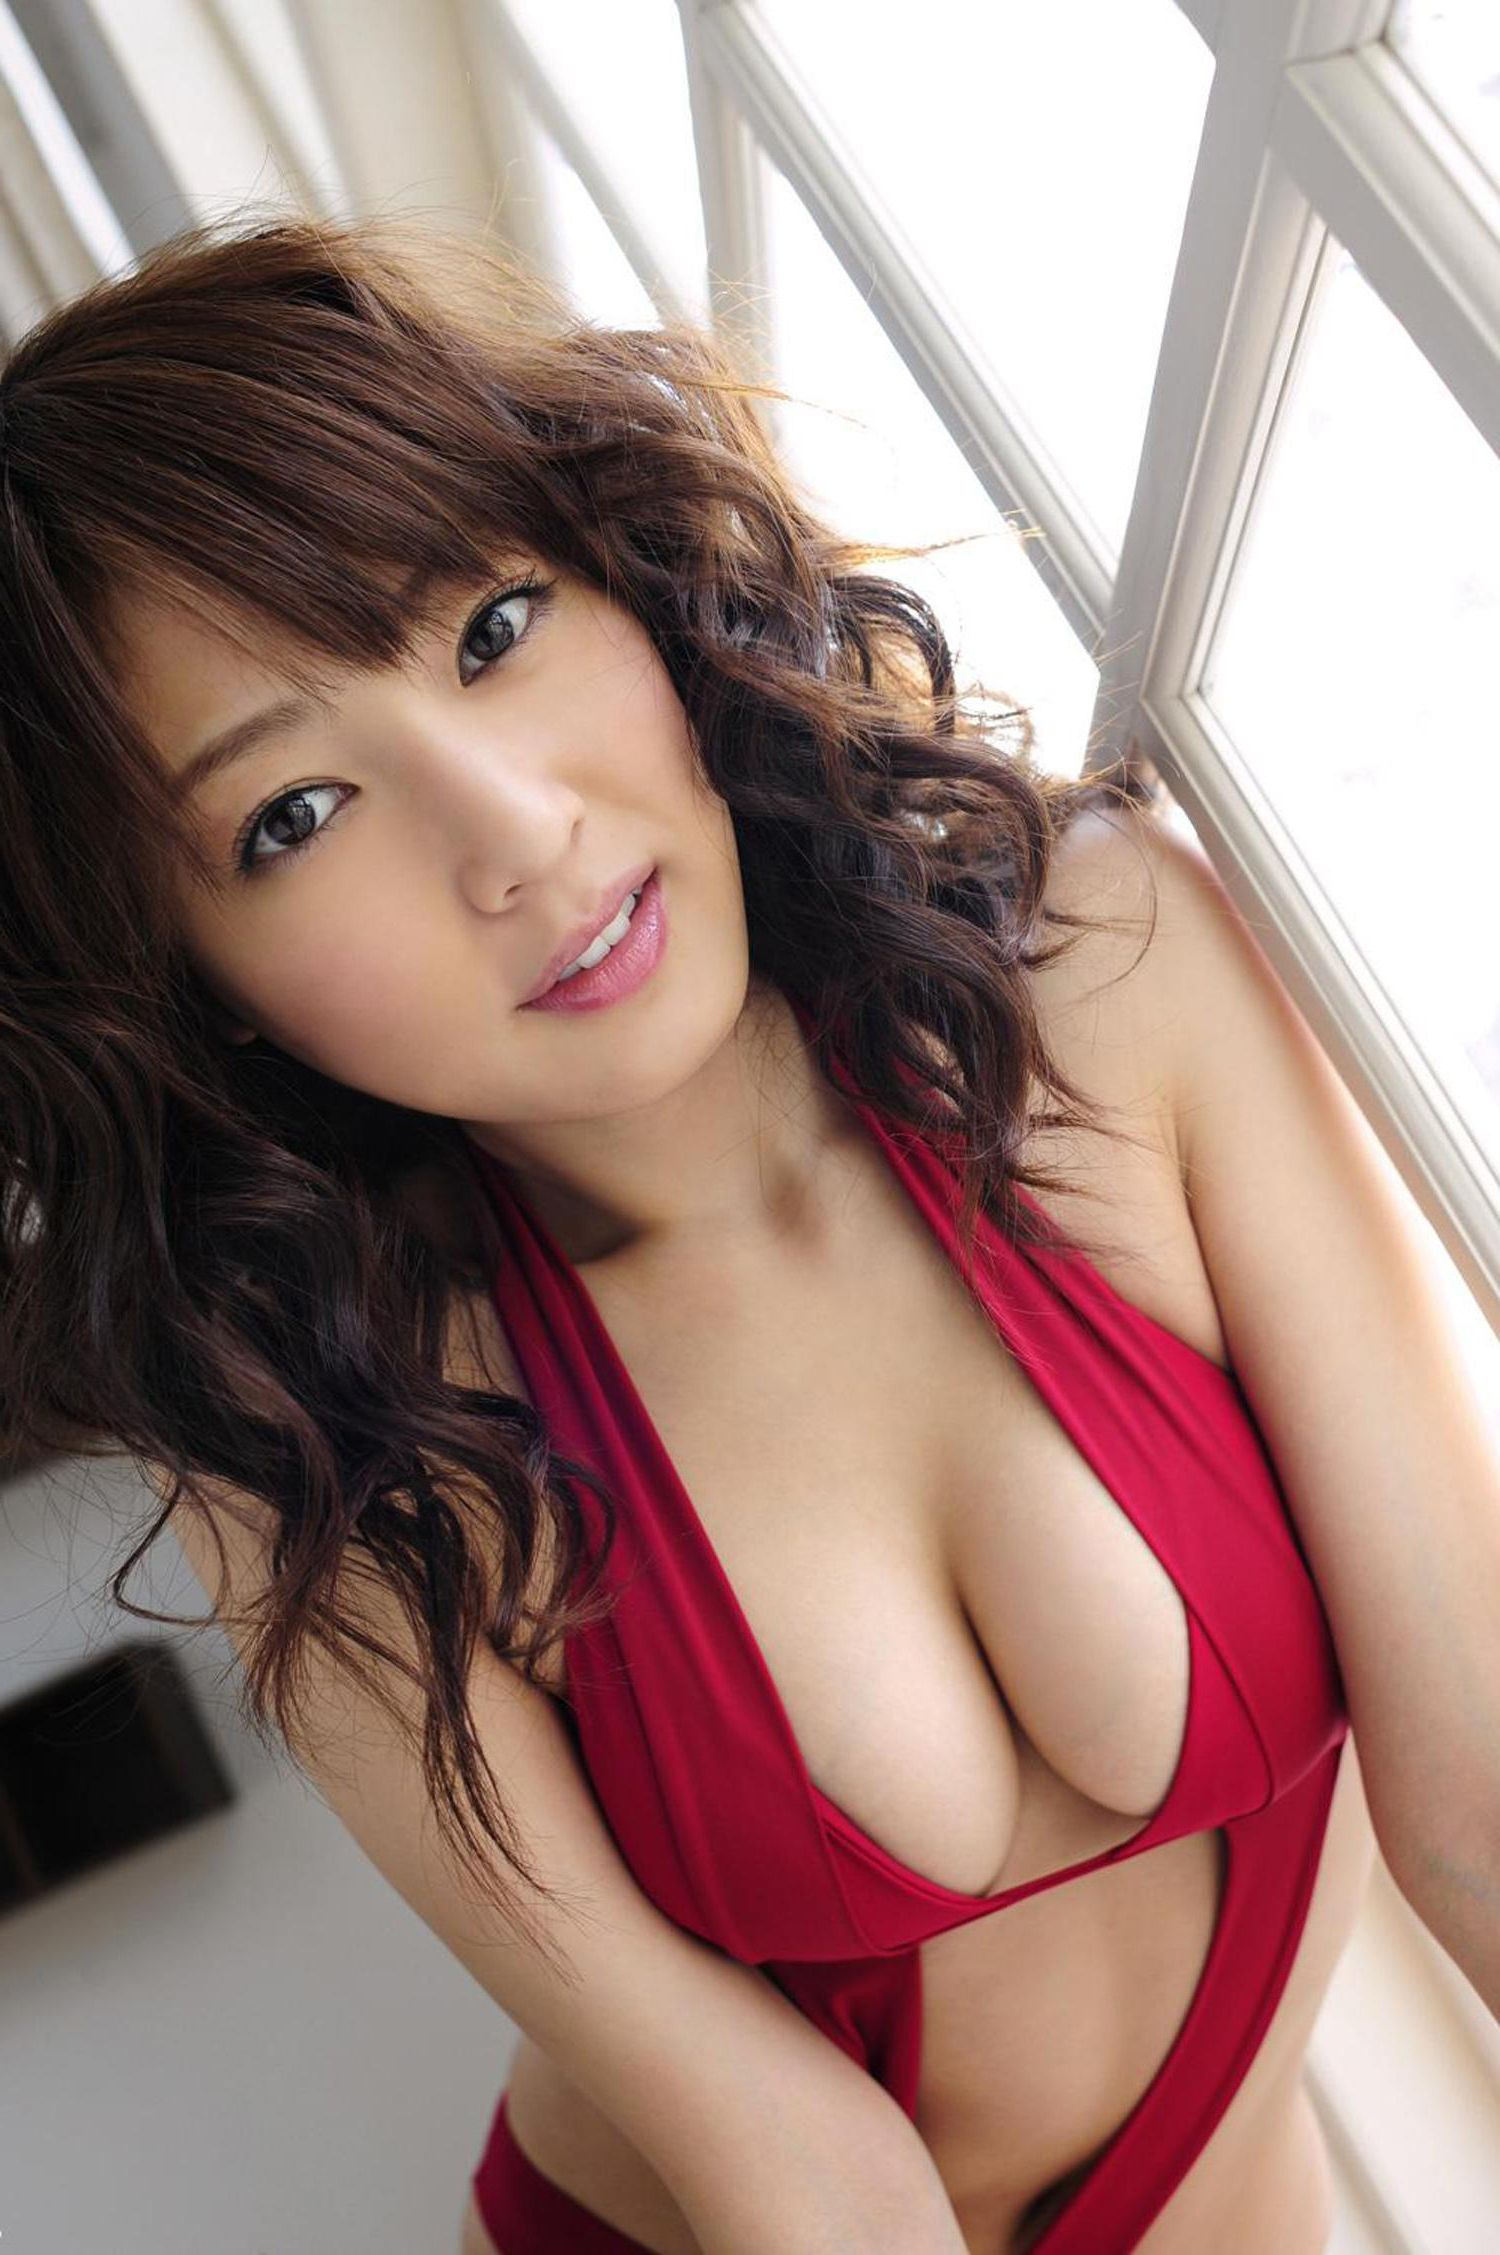 ikeda natsuki / 池田夏希 | mature beauty | pinterest | asian, asian